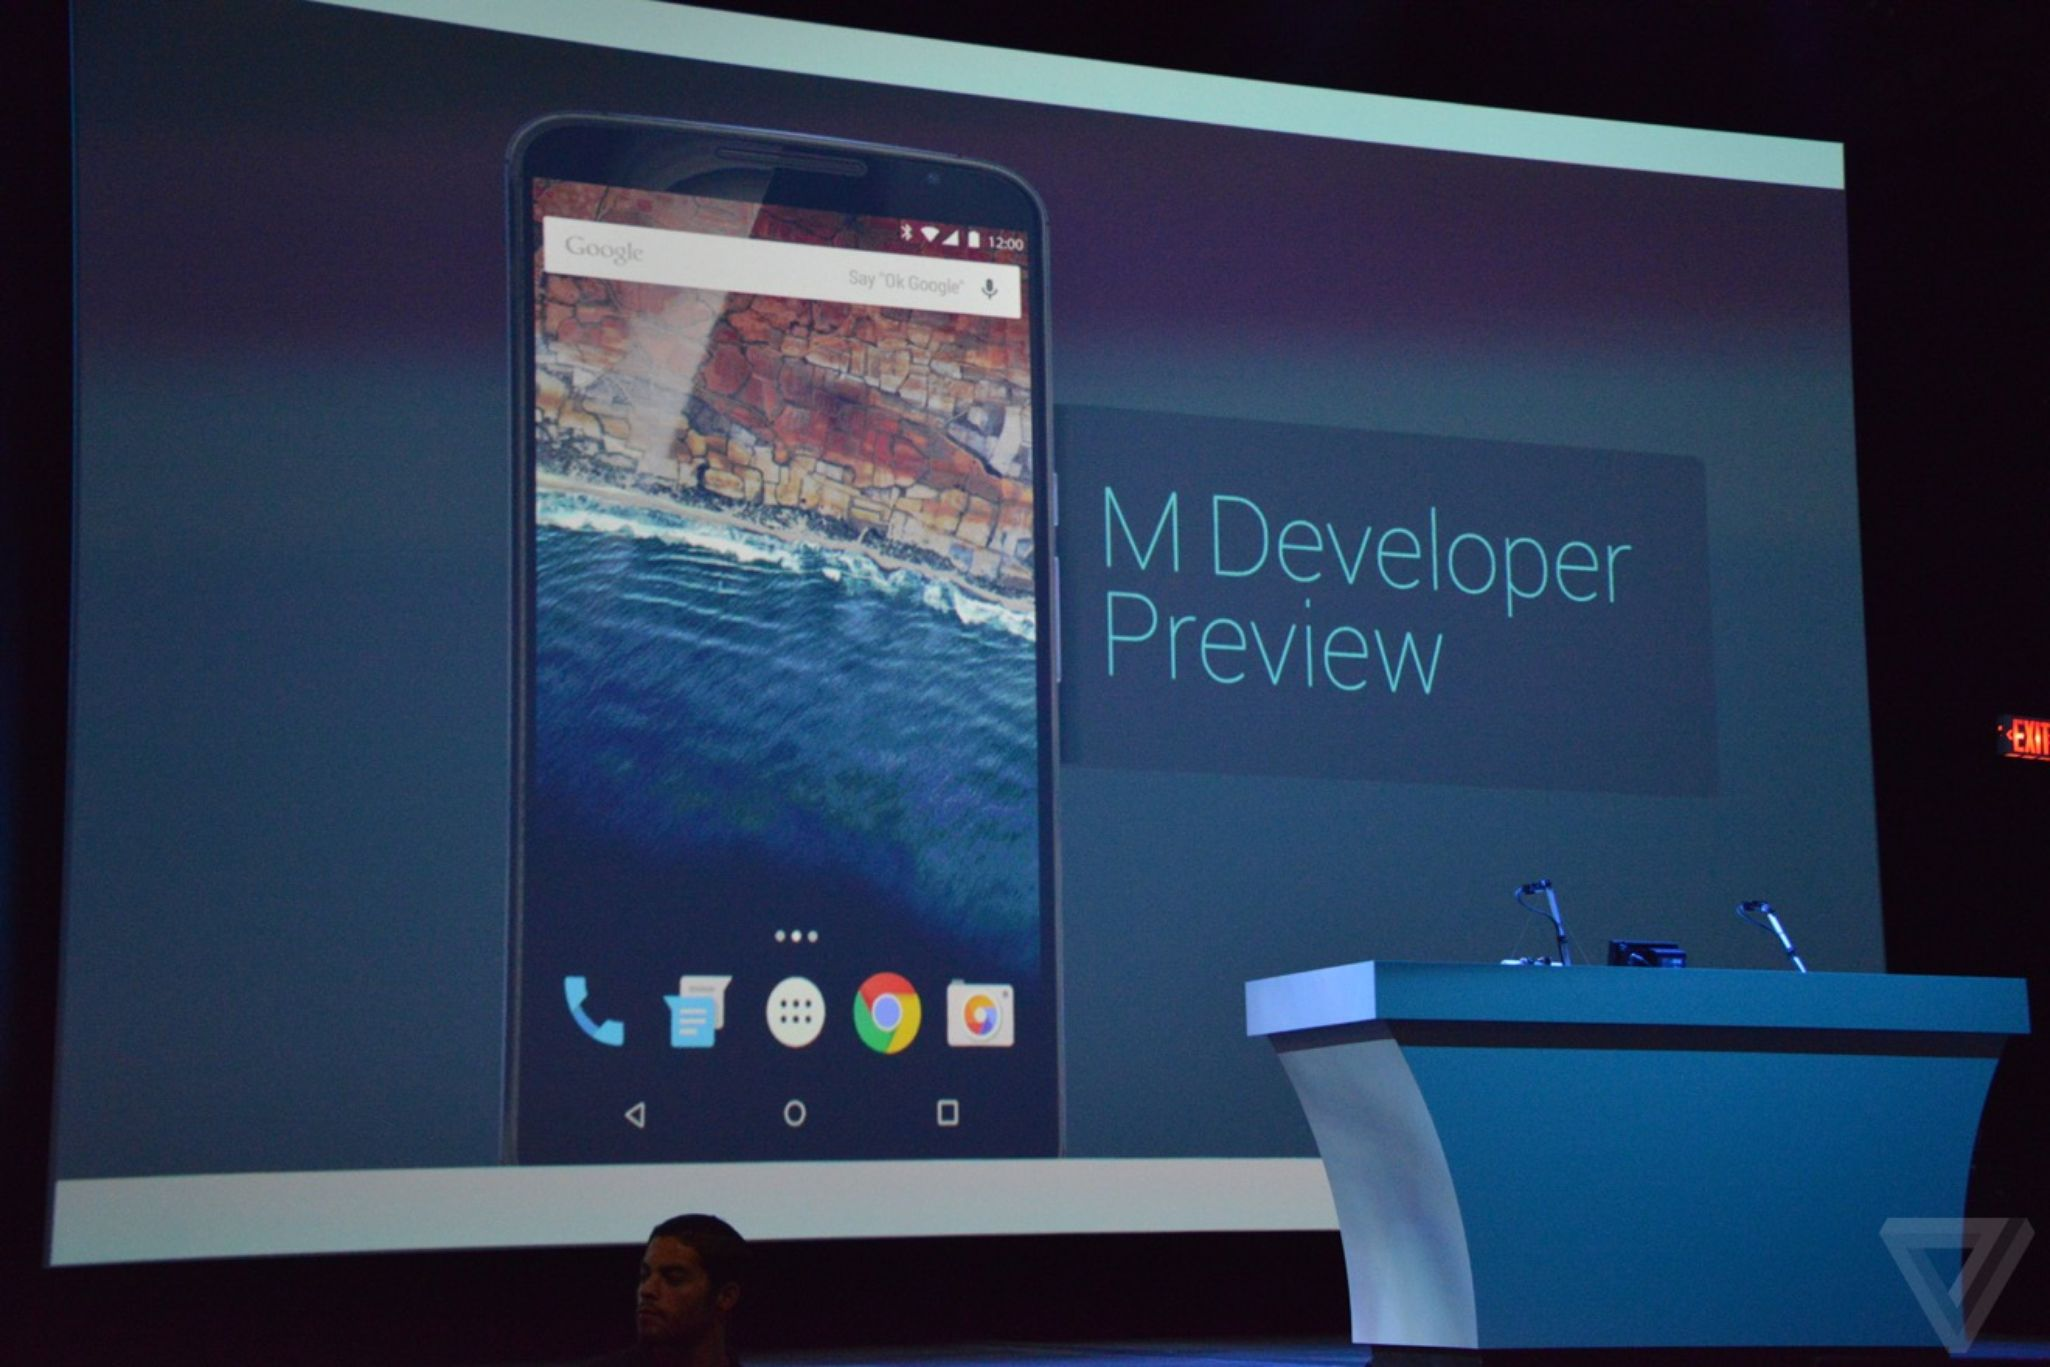 android-m-developer-preview-280515